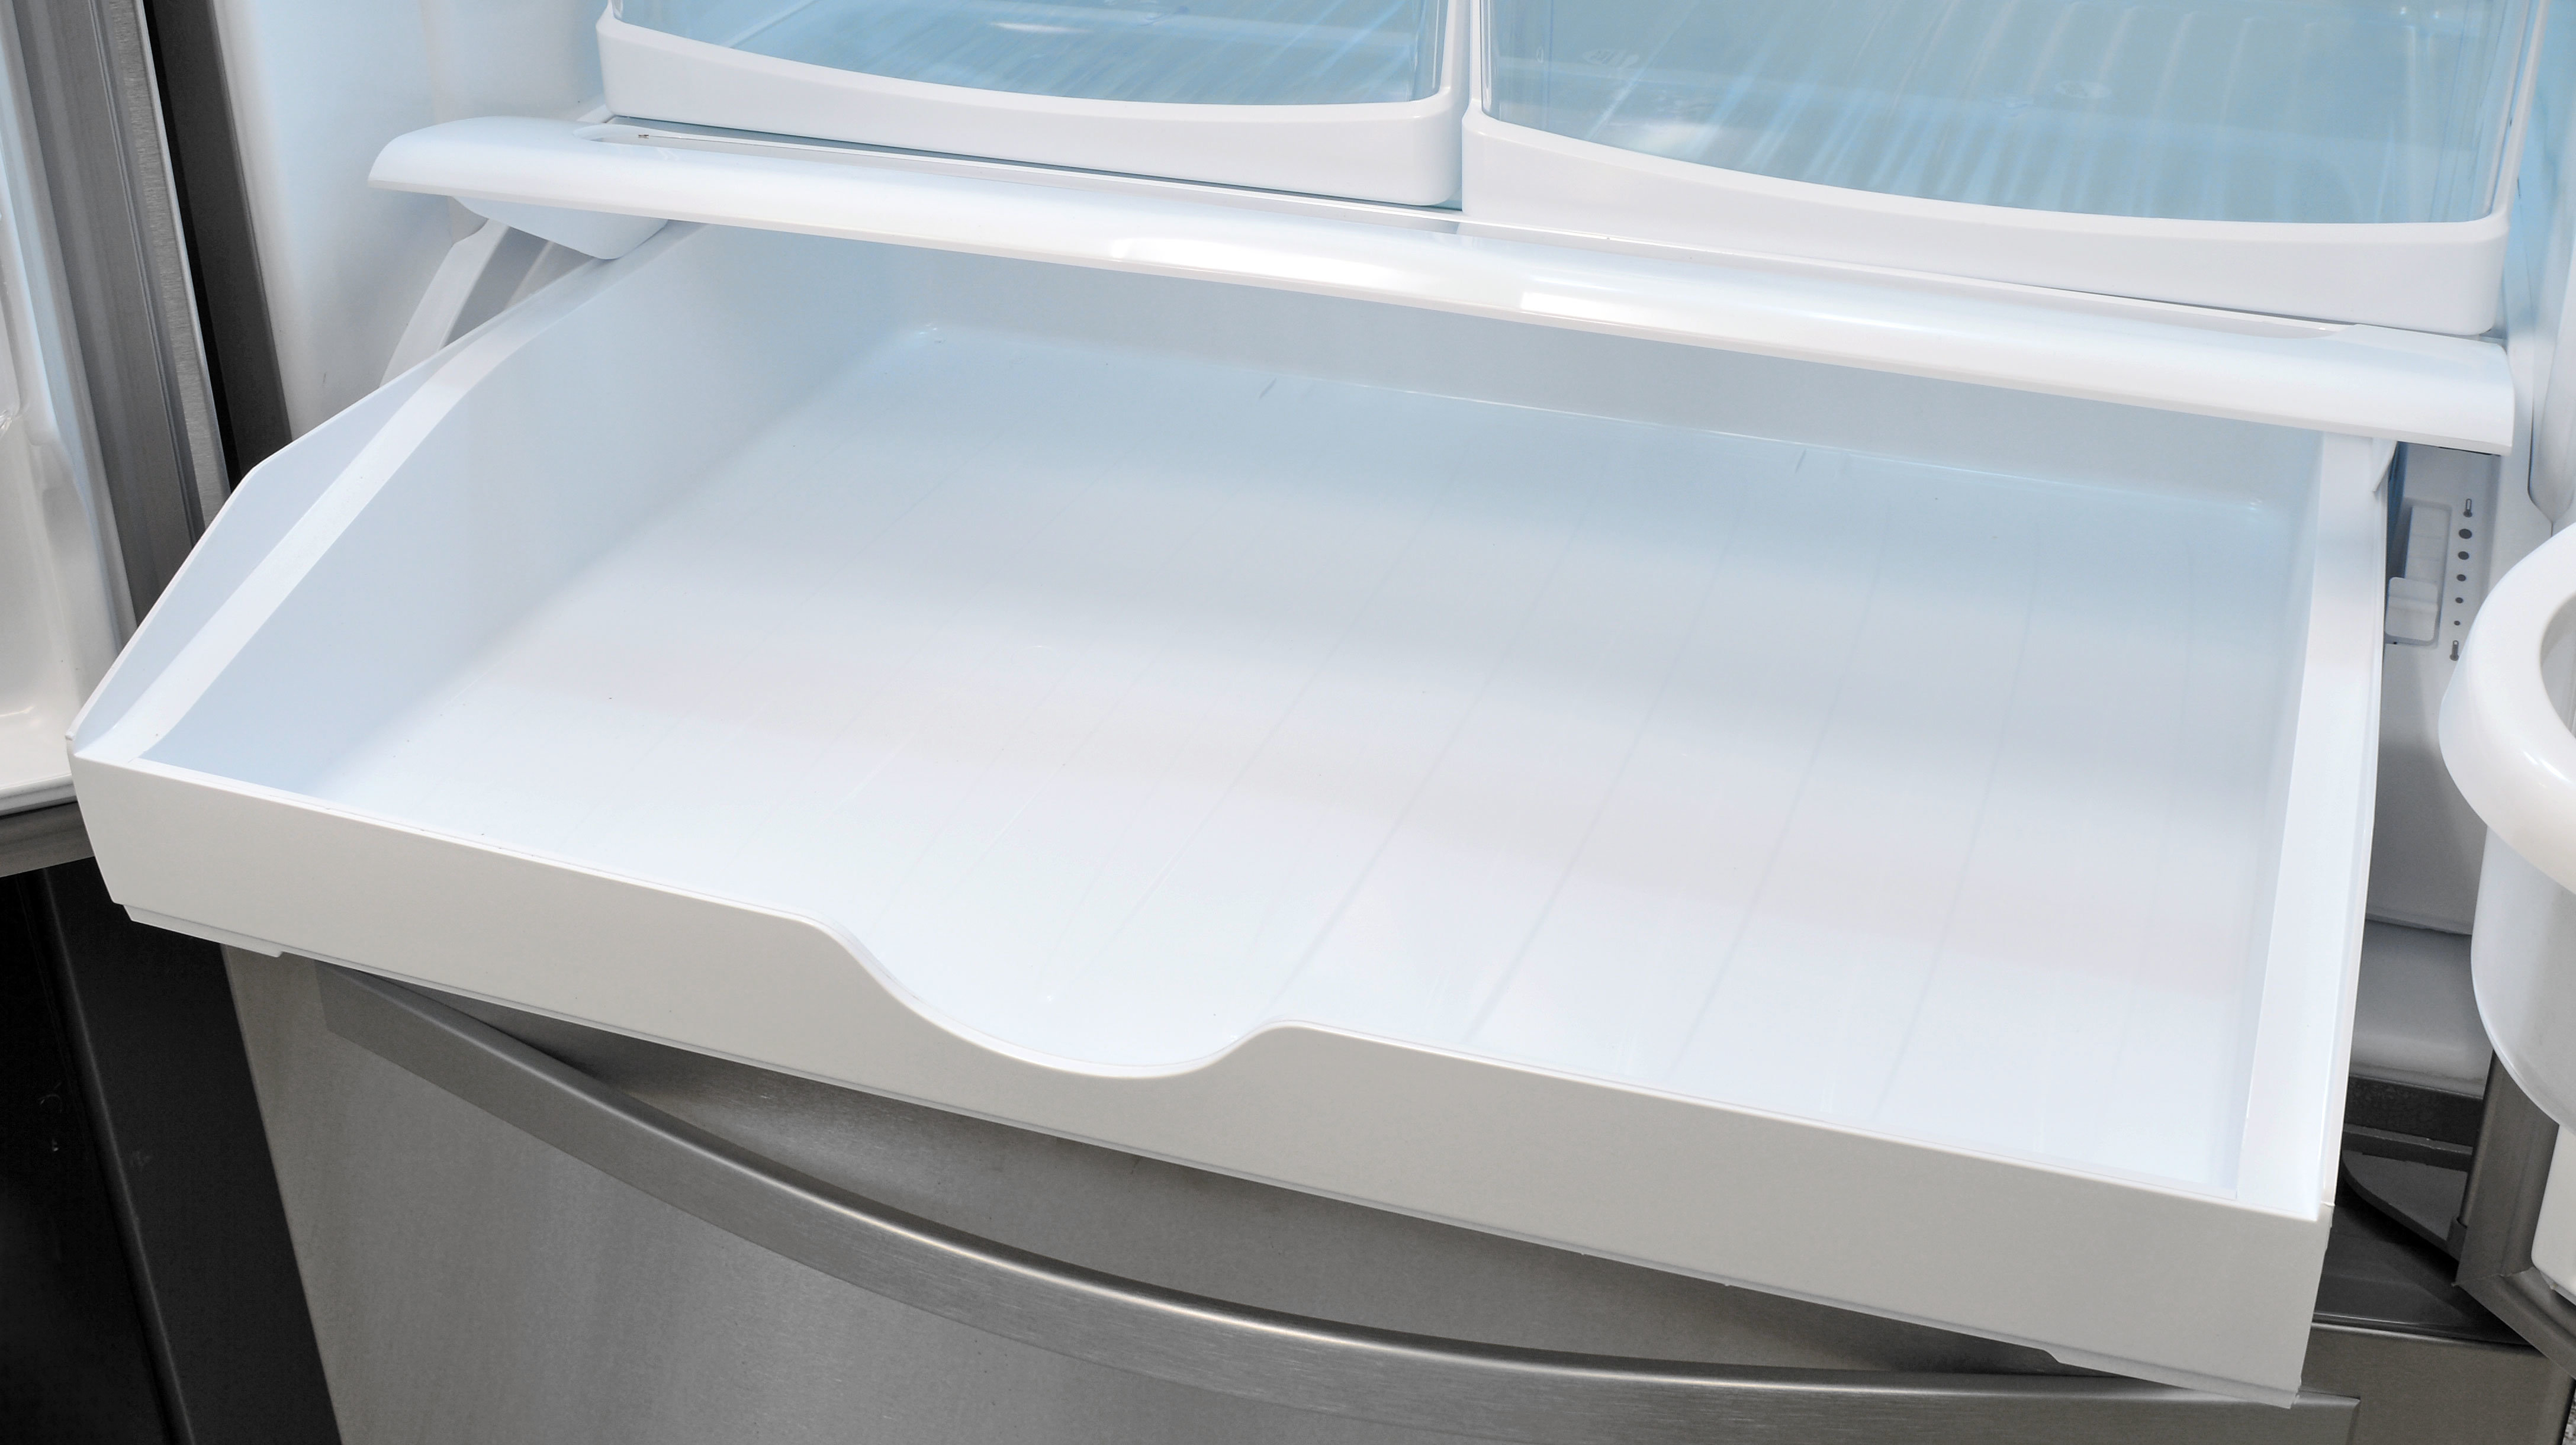 The Whirlpool WRF535SMBM's pantry drawer has an adjustable temperature slide which is hidden when the drawer is shut. You can see it here off on the right side.